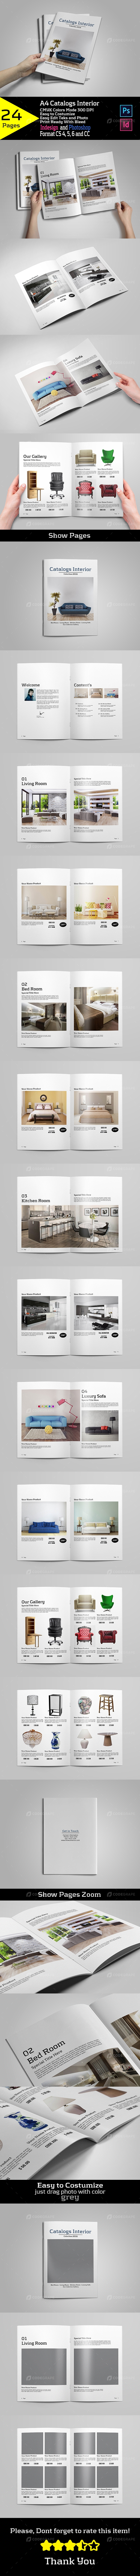 A4 Catalogs Interior